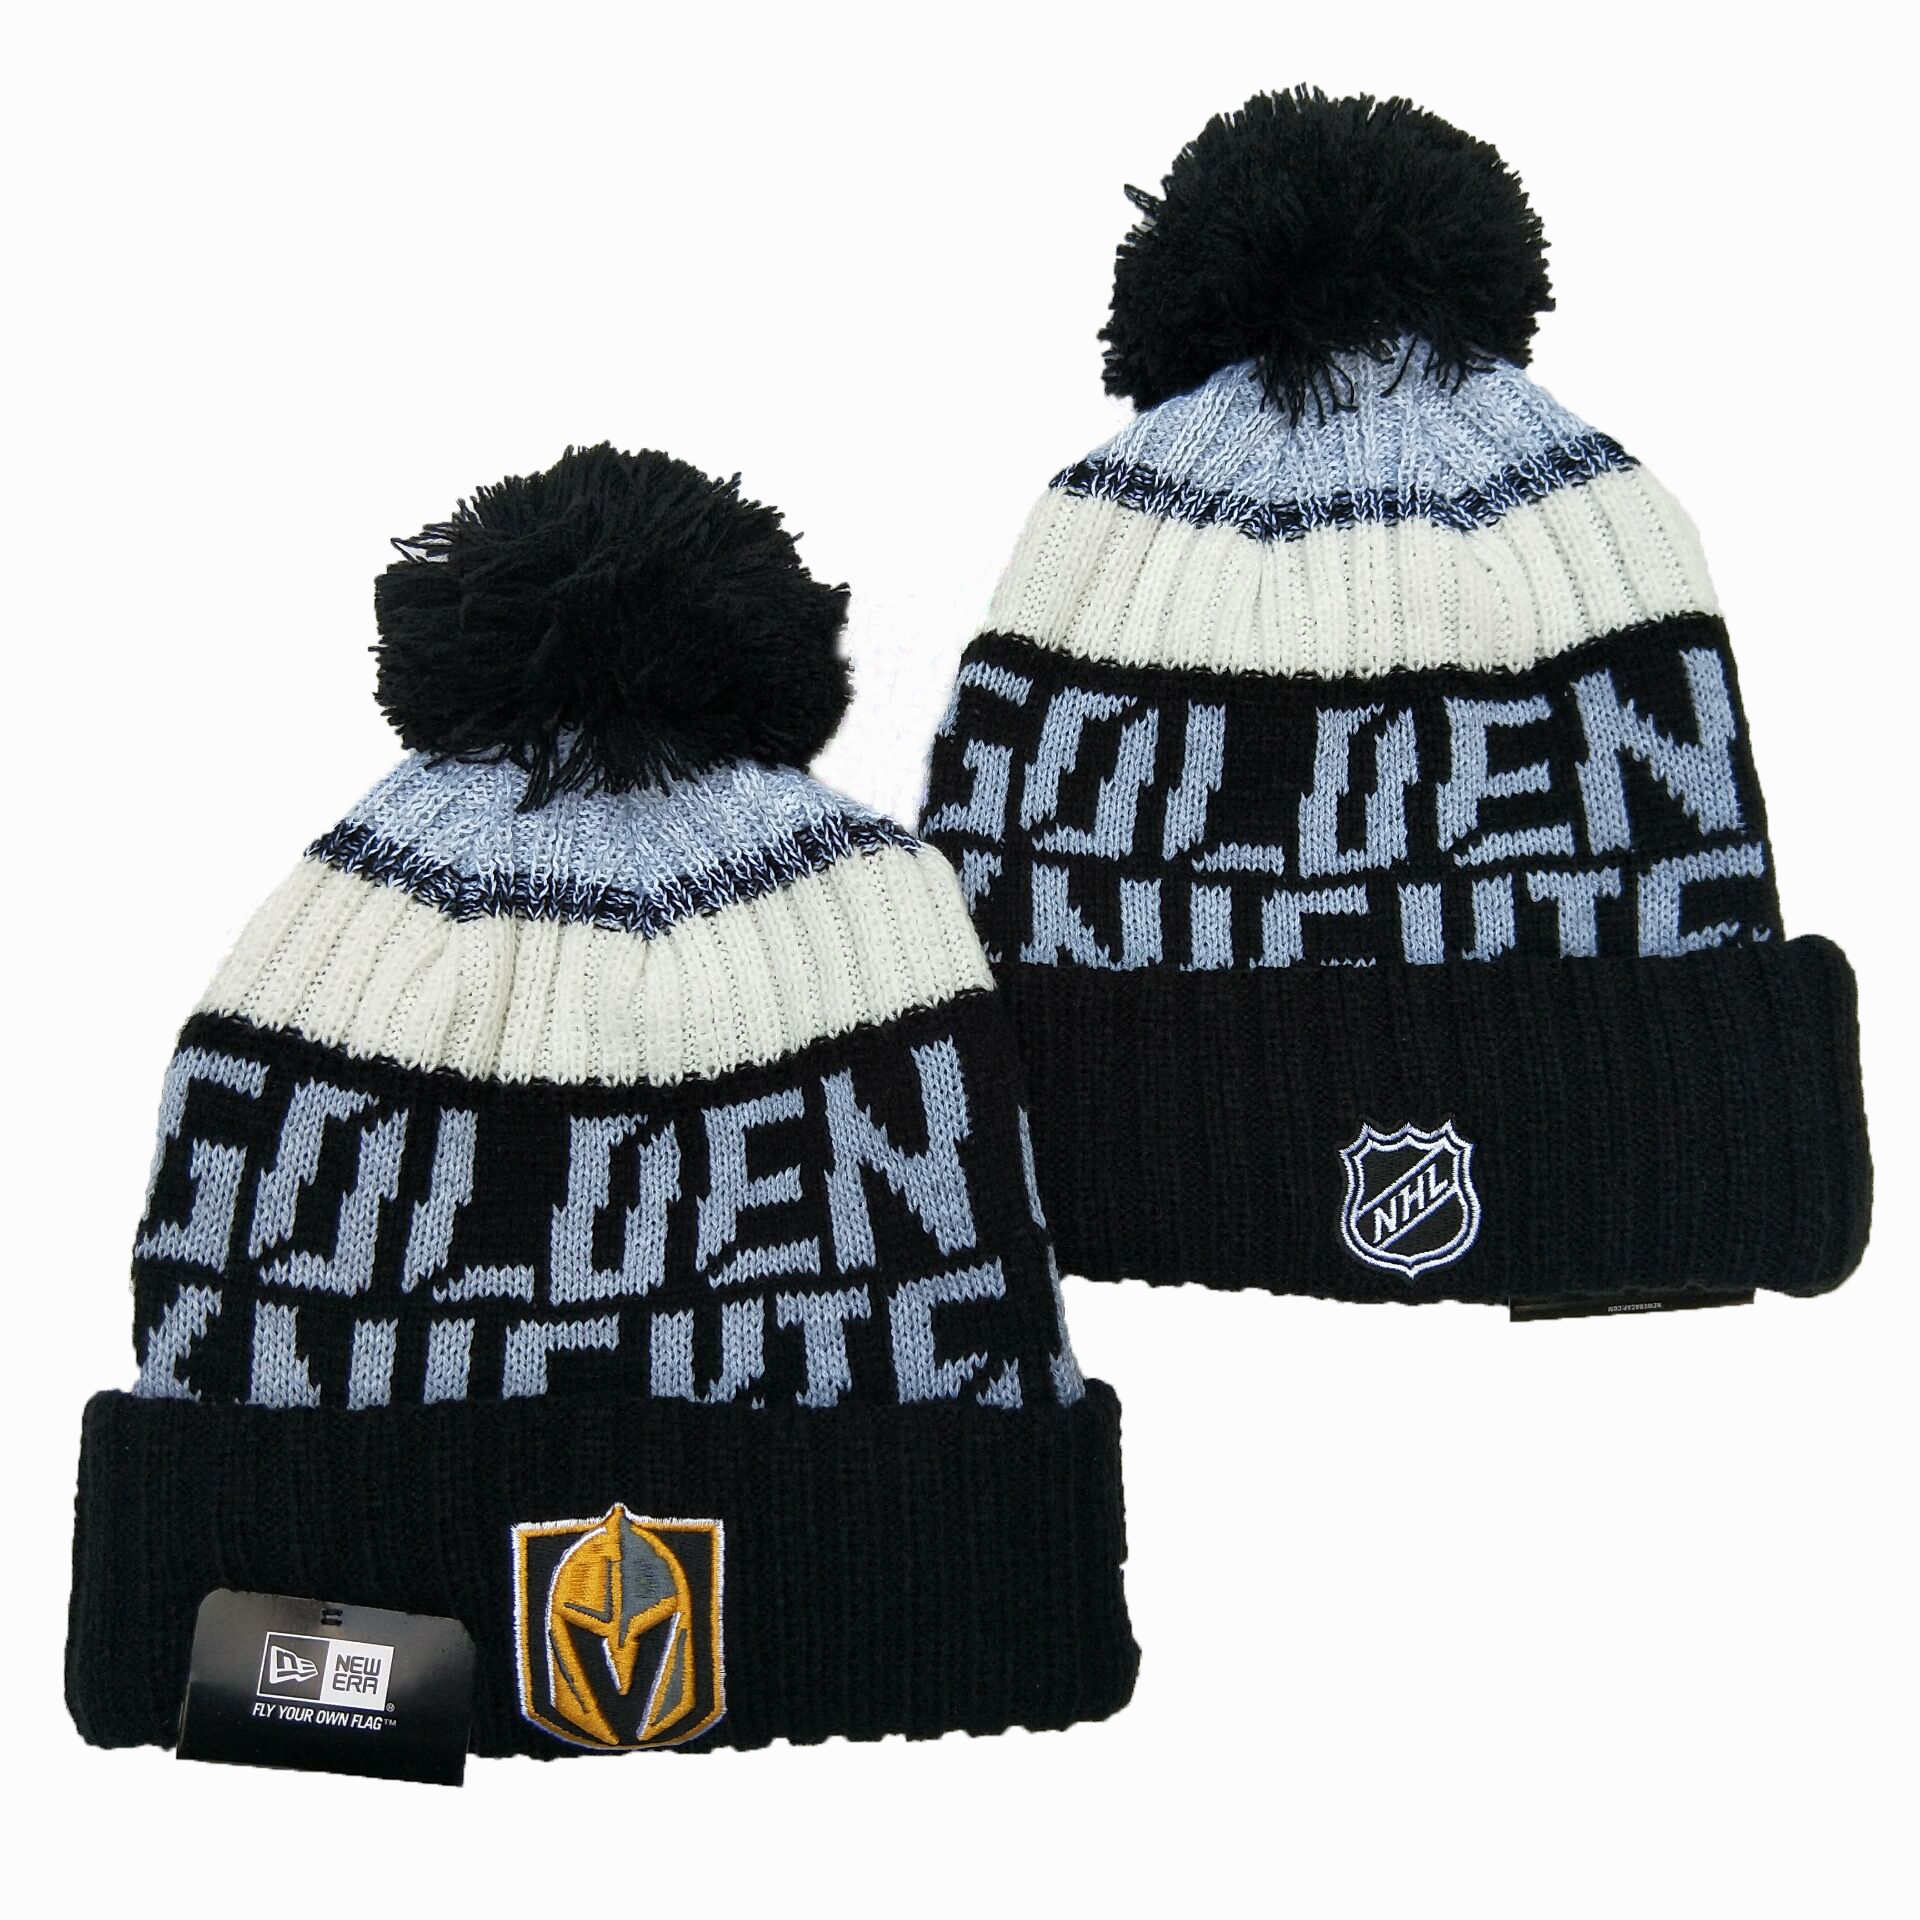 Vegas Golden Knights Team Logo Black Pom Knit Hat YD